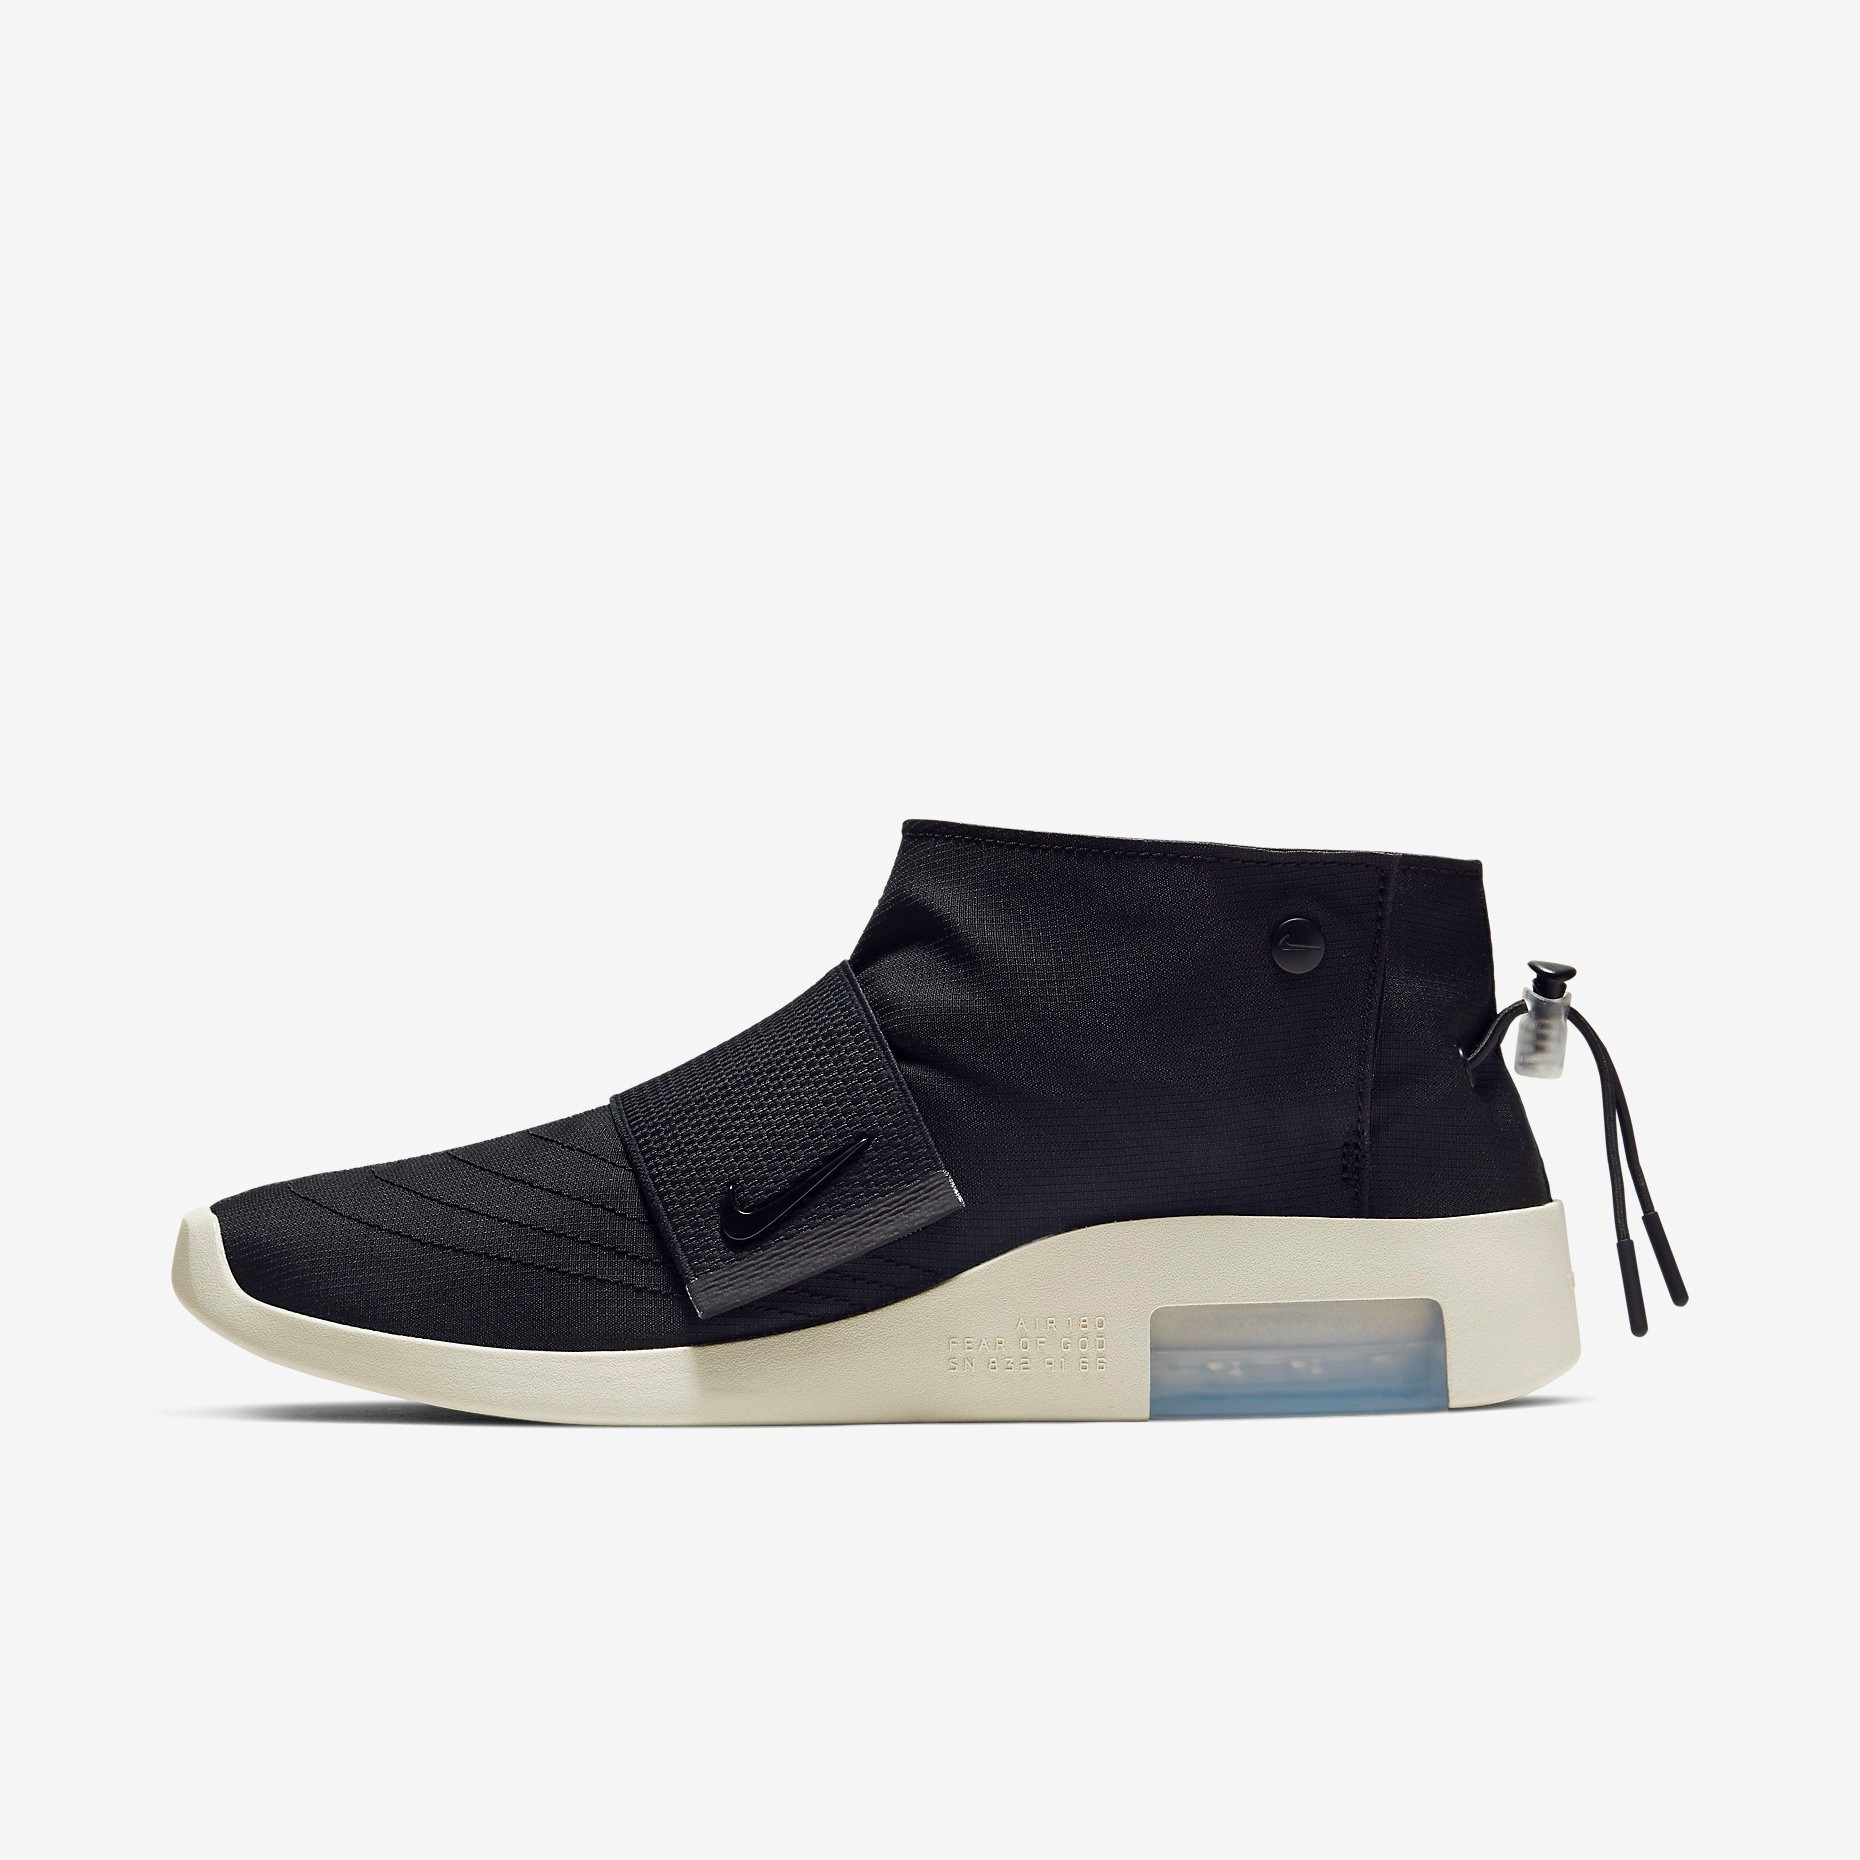 Fear of God x Nike Moccasin Black 1